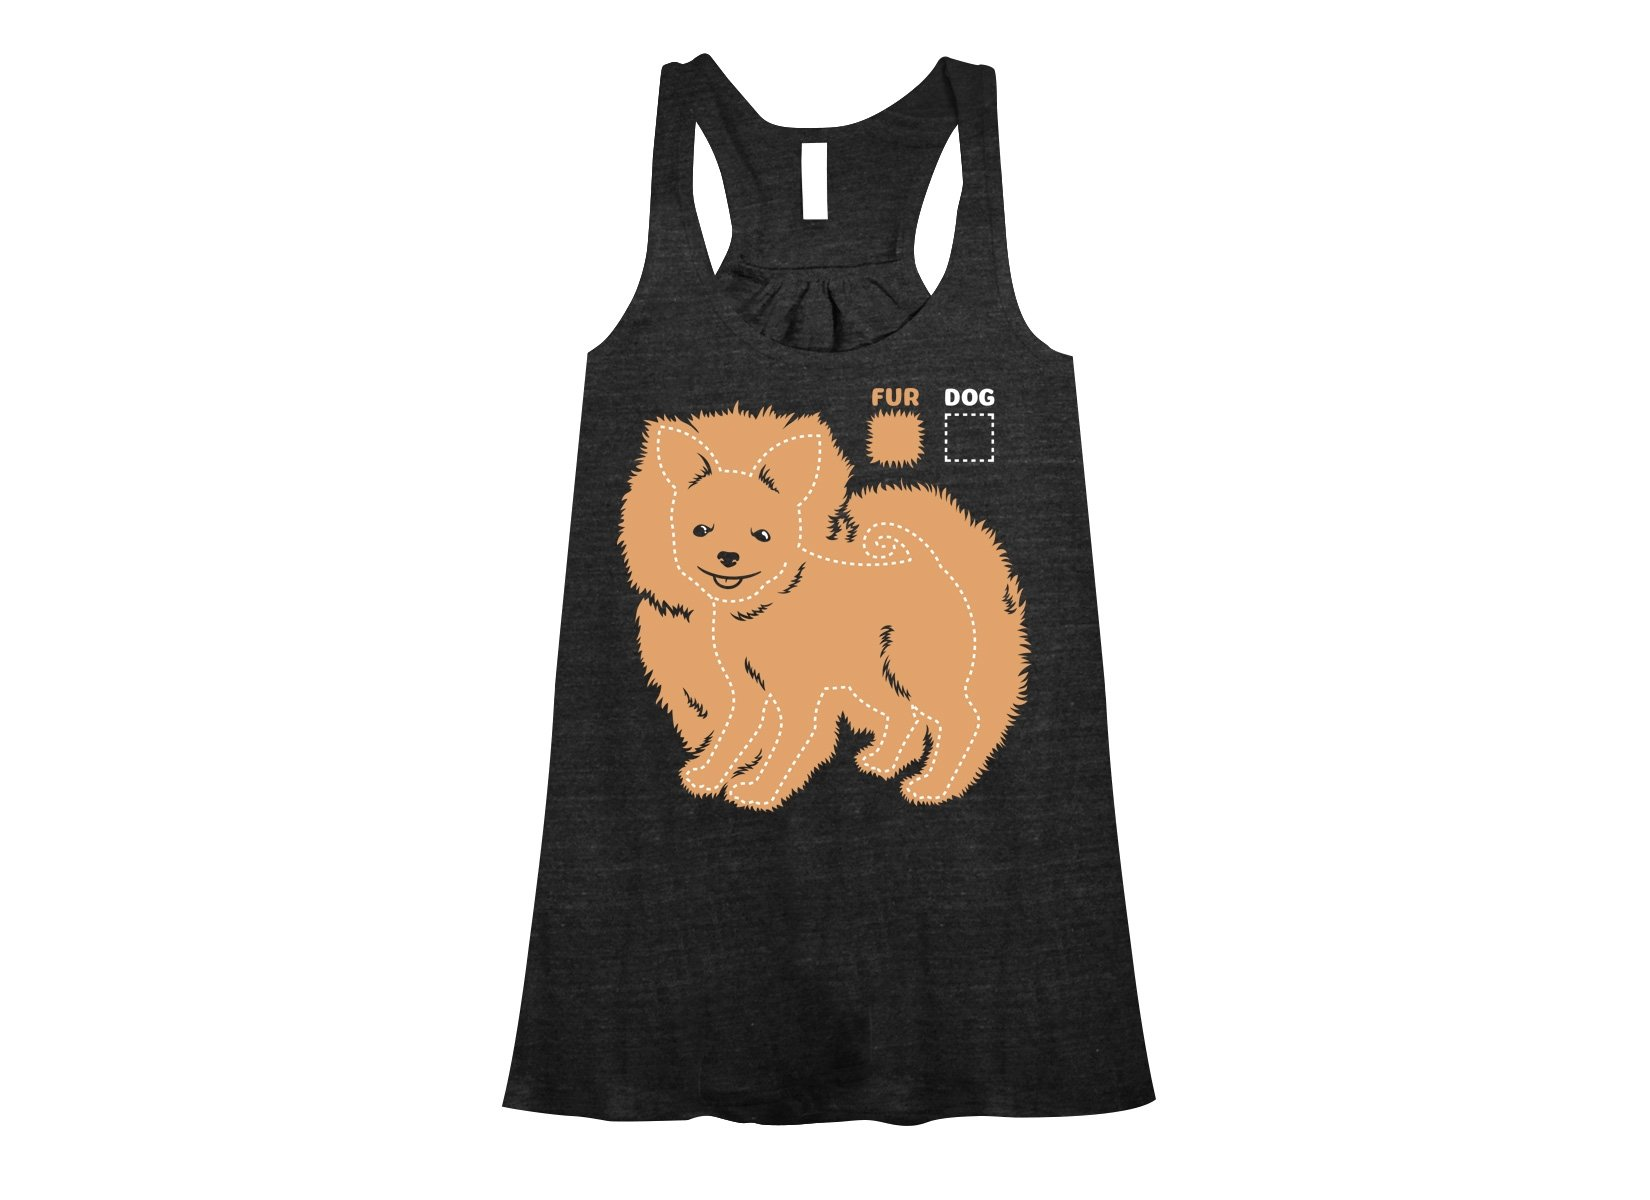 Dog vs Fur Pomeranian on Womens Tanks T-Shirt